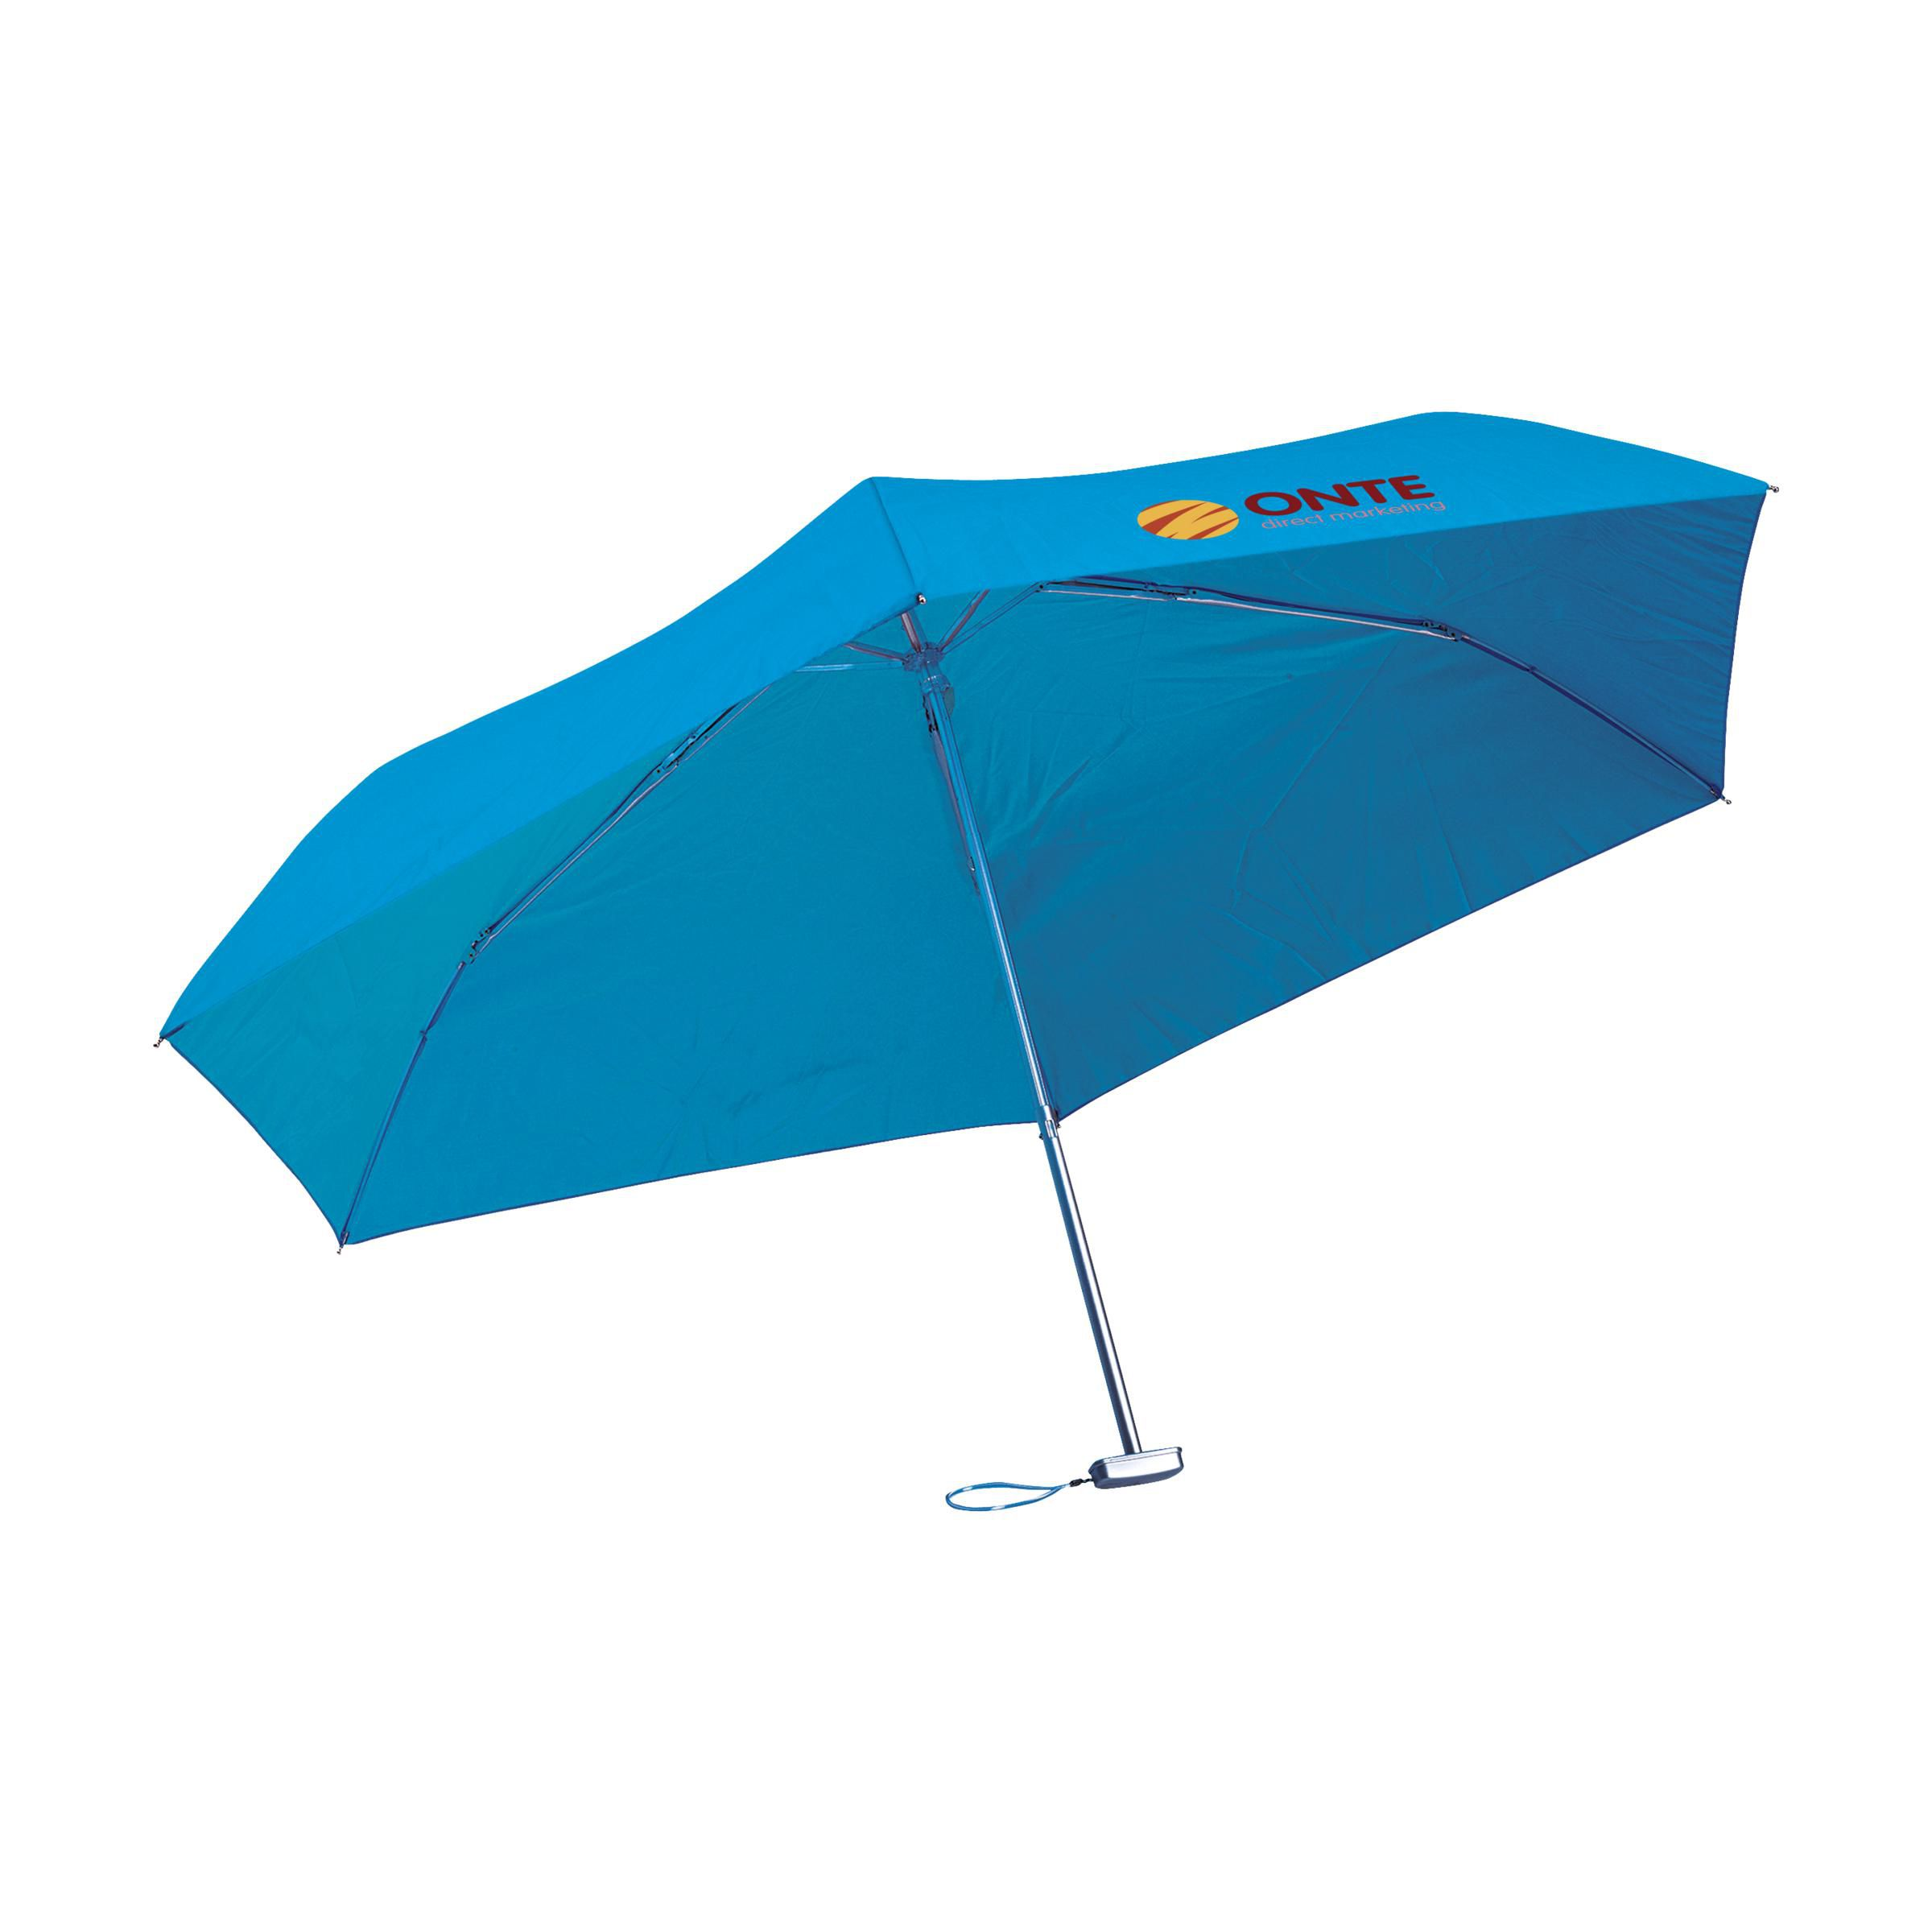 Ultra folding umbrella